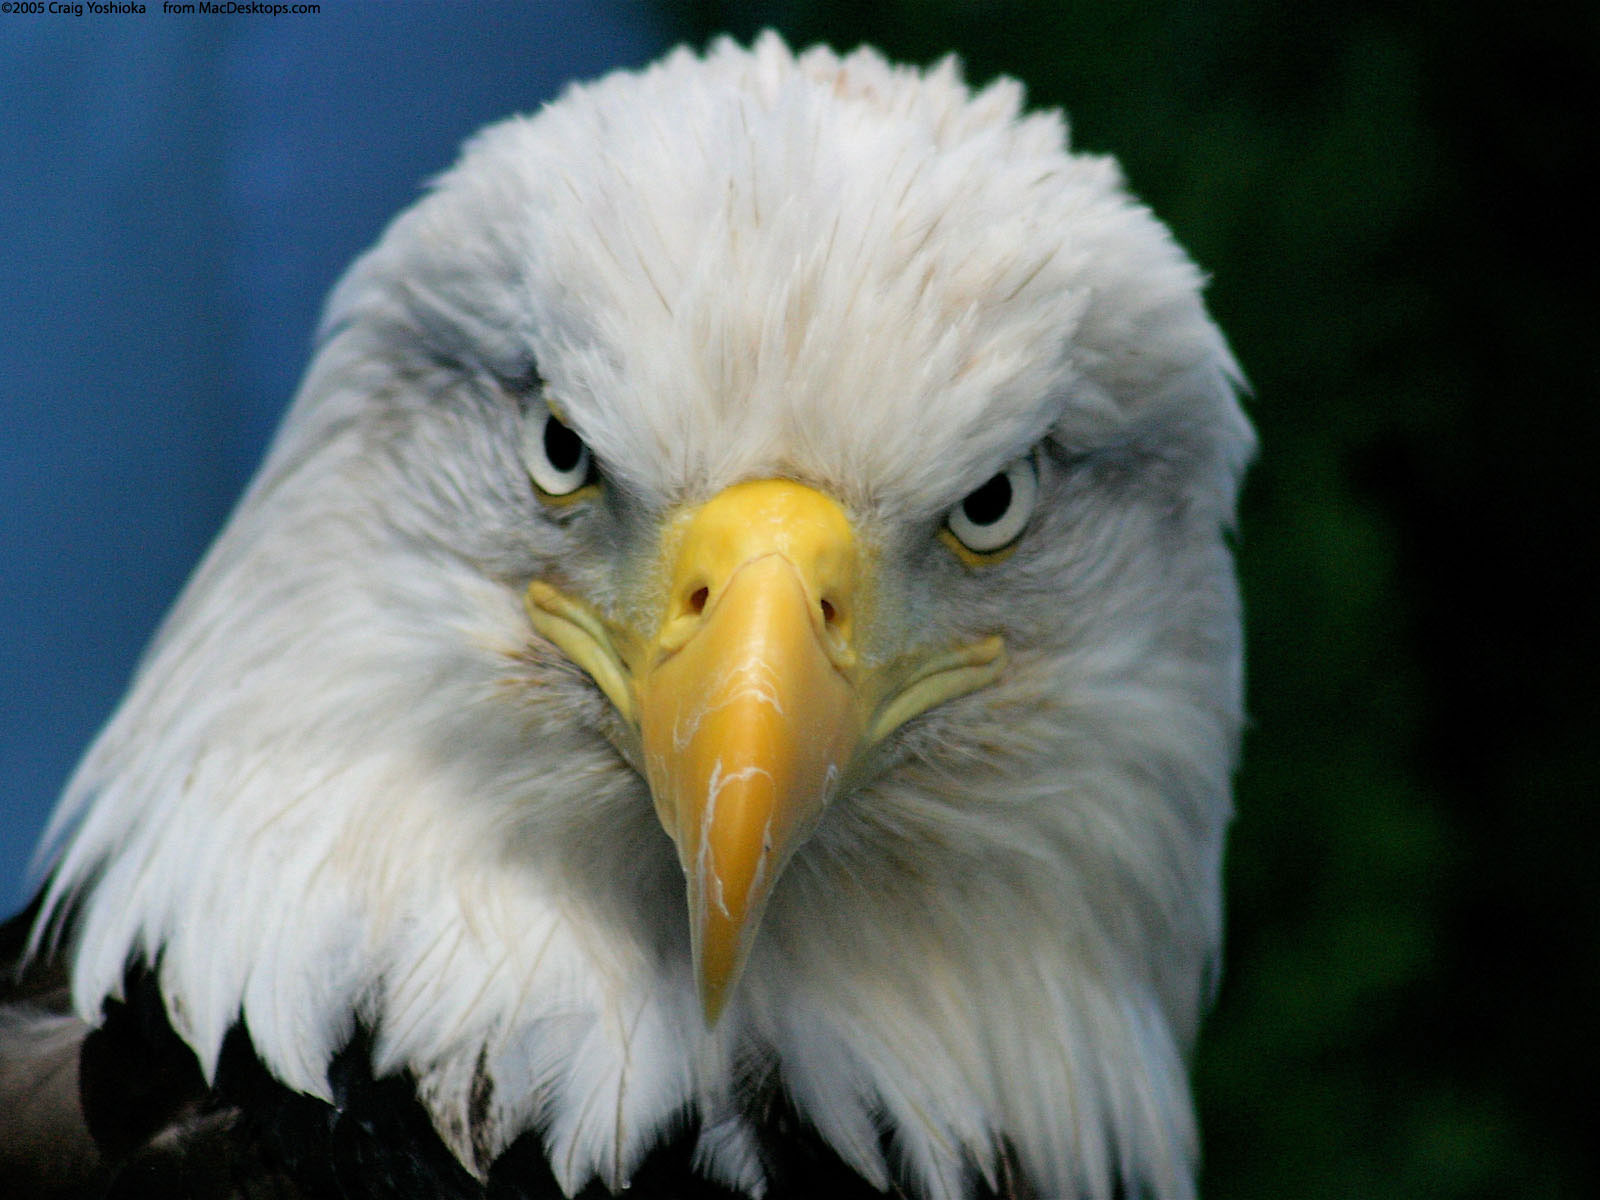 bald eagle wallpaper - wallpaper, high definition, high quality